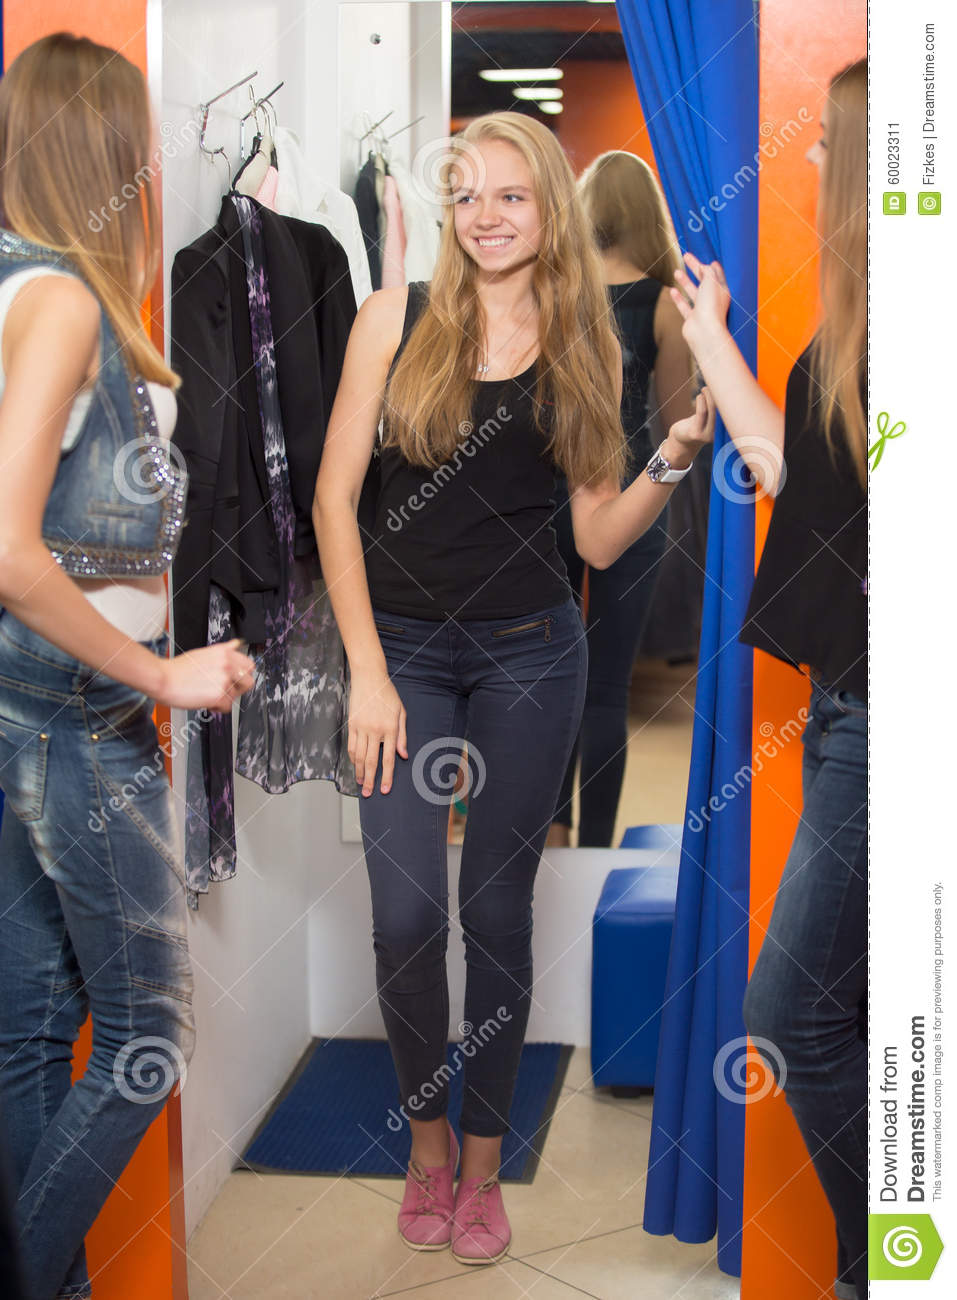 Teen Girls Clothing Store